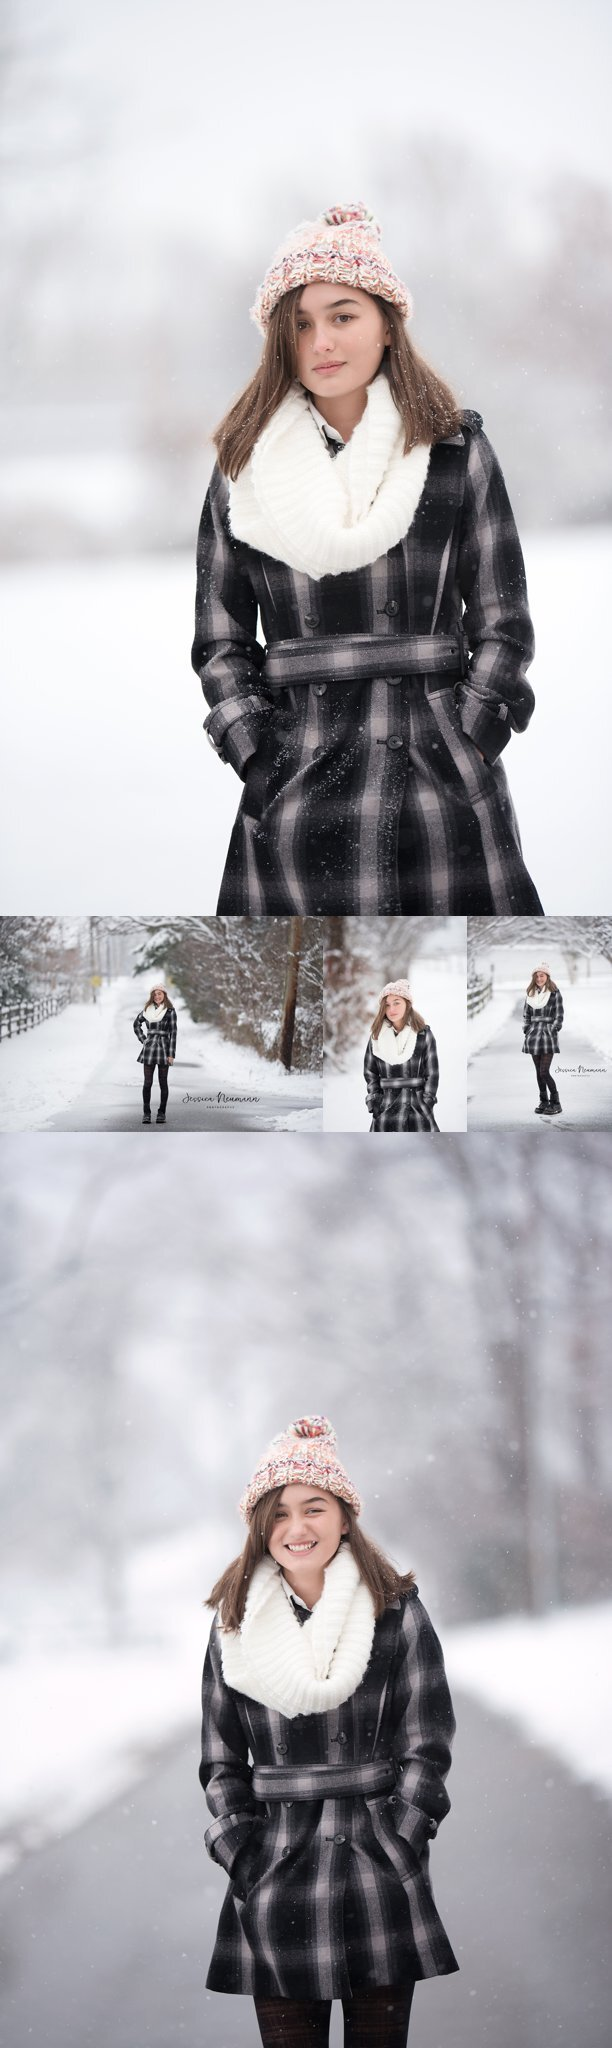 Senior portrait in the snow, Frederick, Maryland